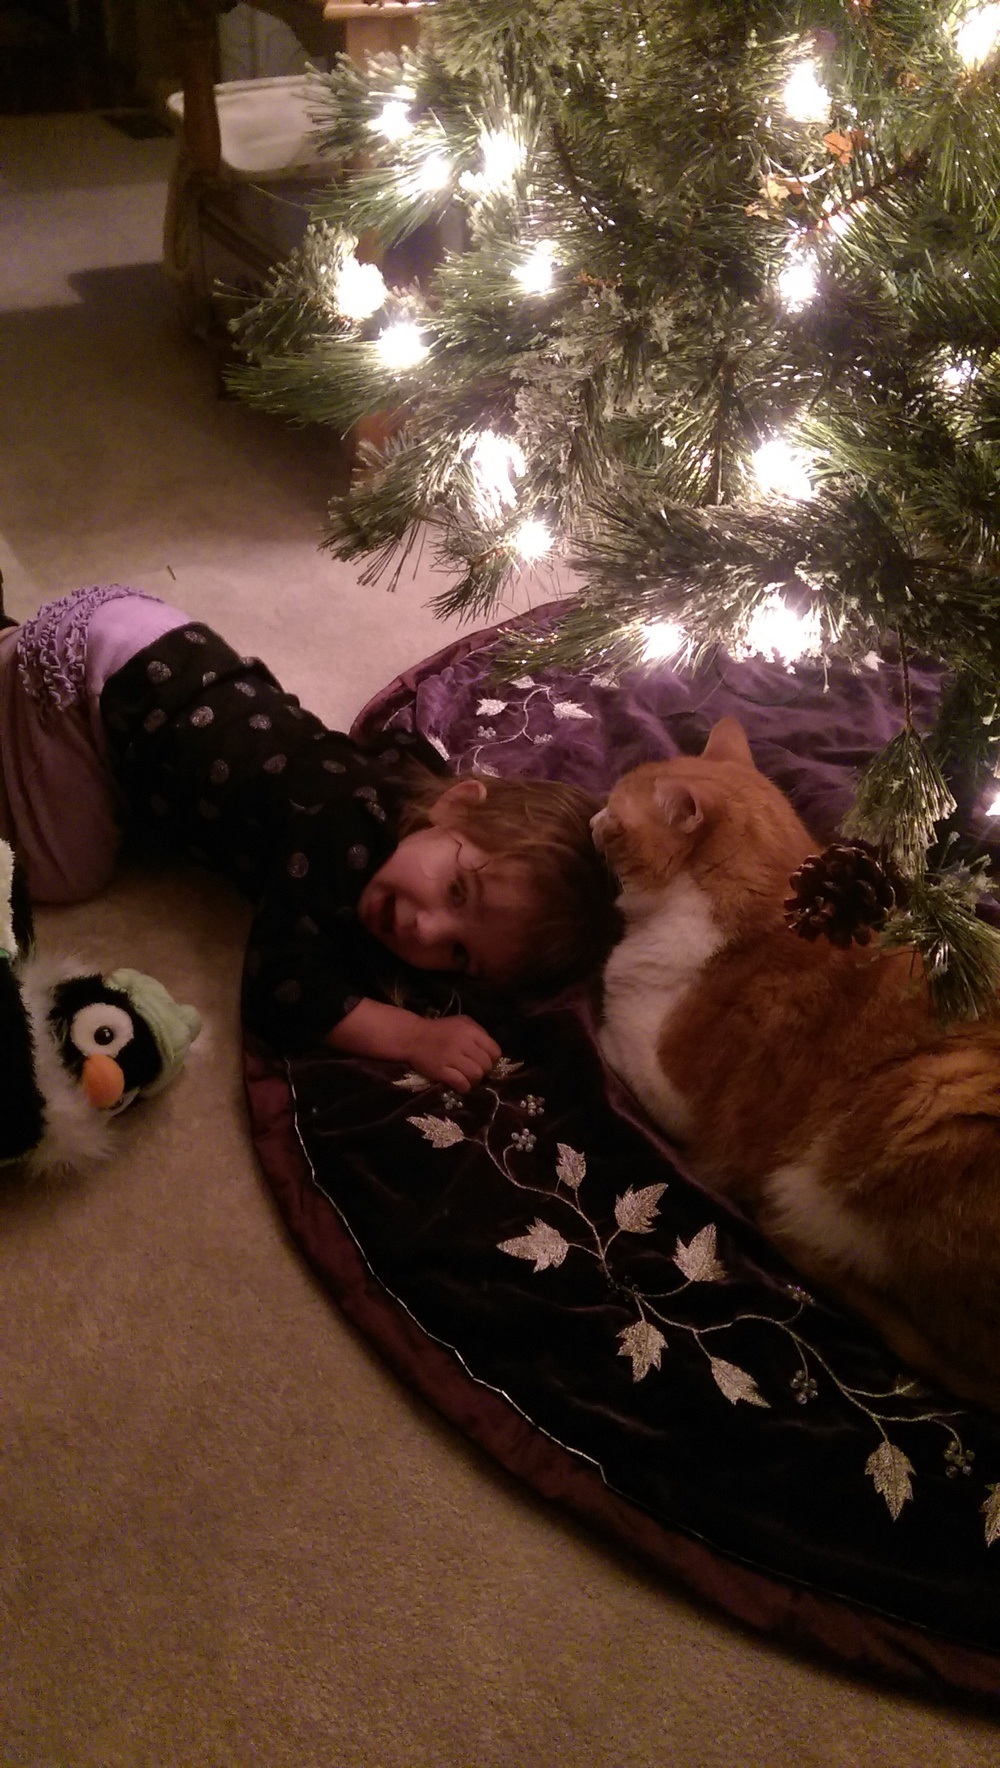 Cece and Pig love to lay down together under the Christmas tree.